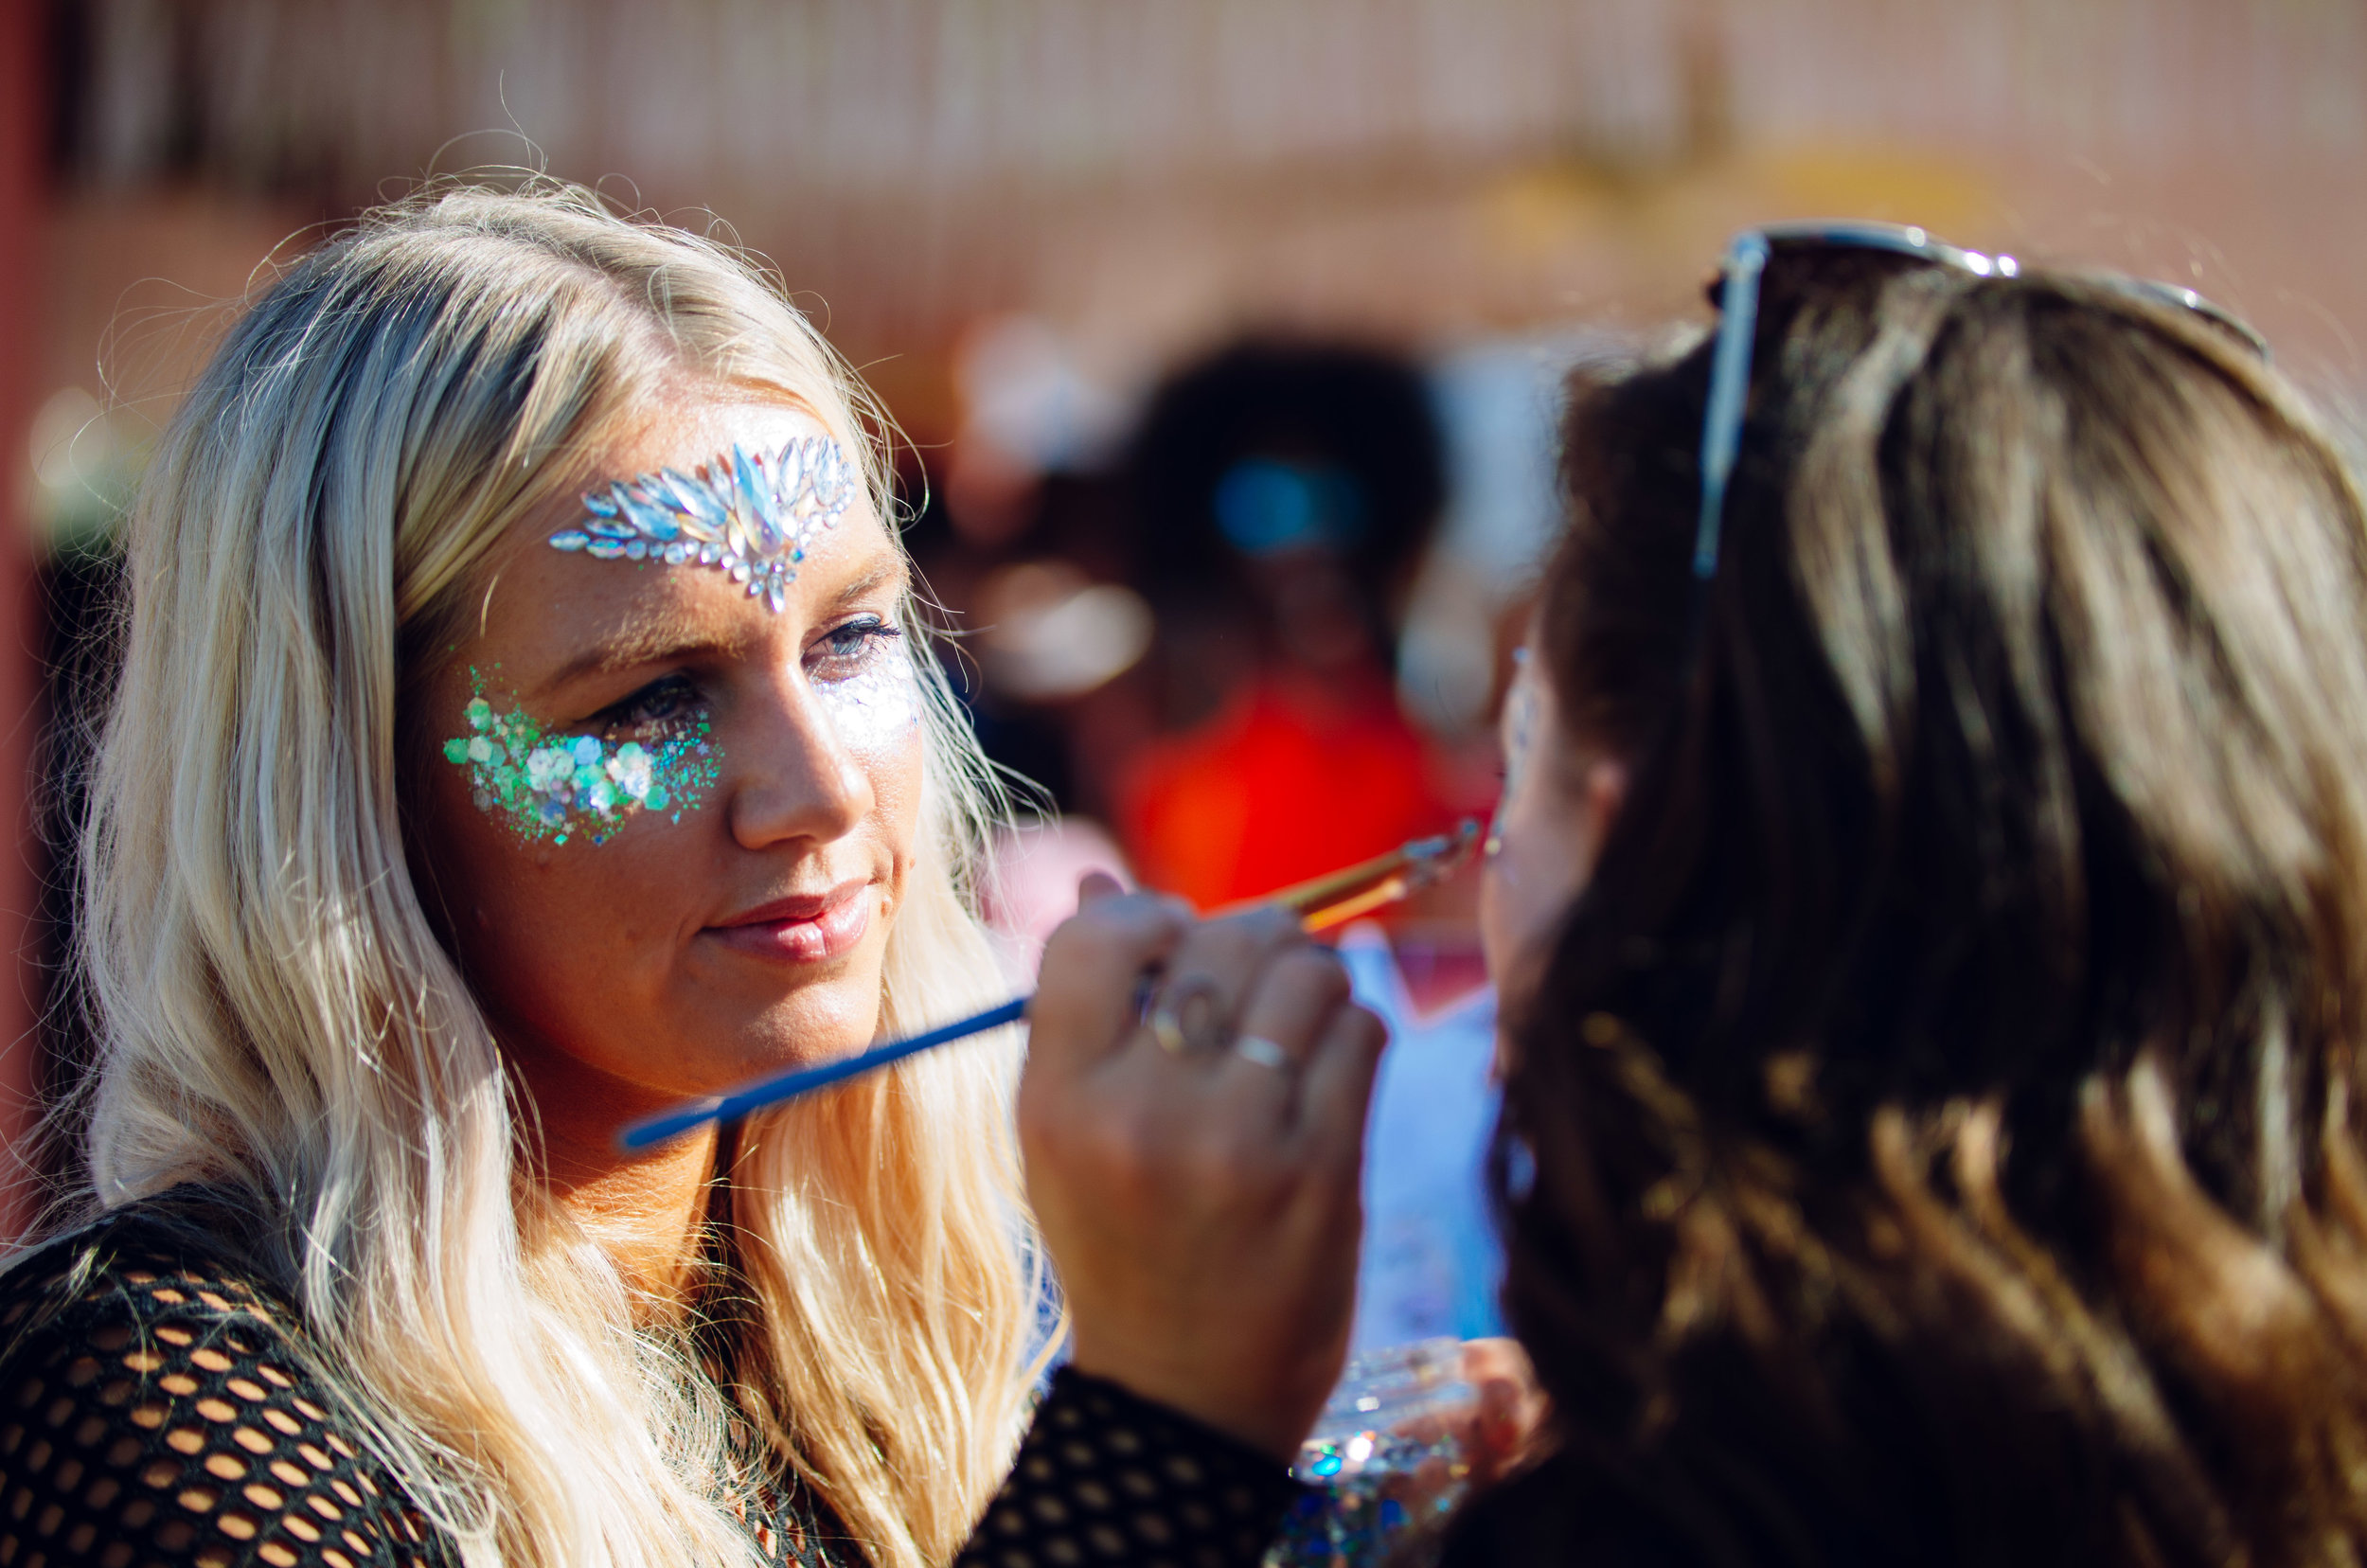 Ultimate Hollywood Coachella Poolside Party the gypsy shrine jewels and glitter makeover.jpg